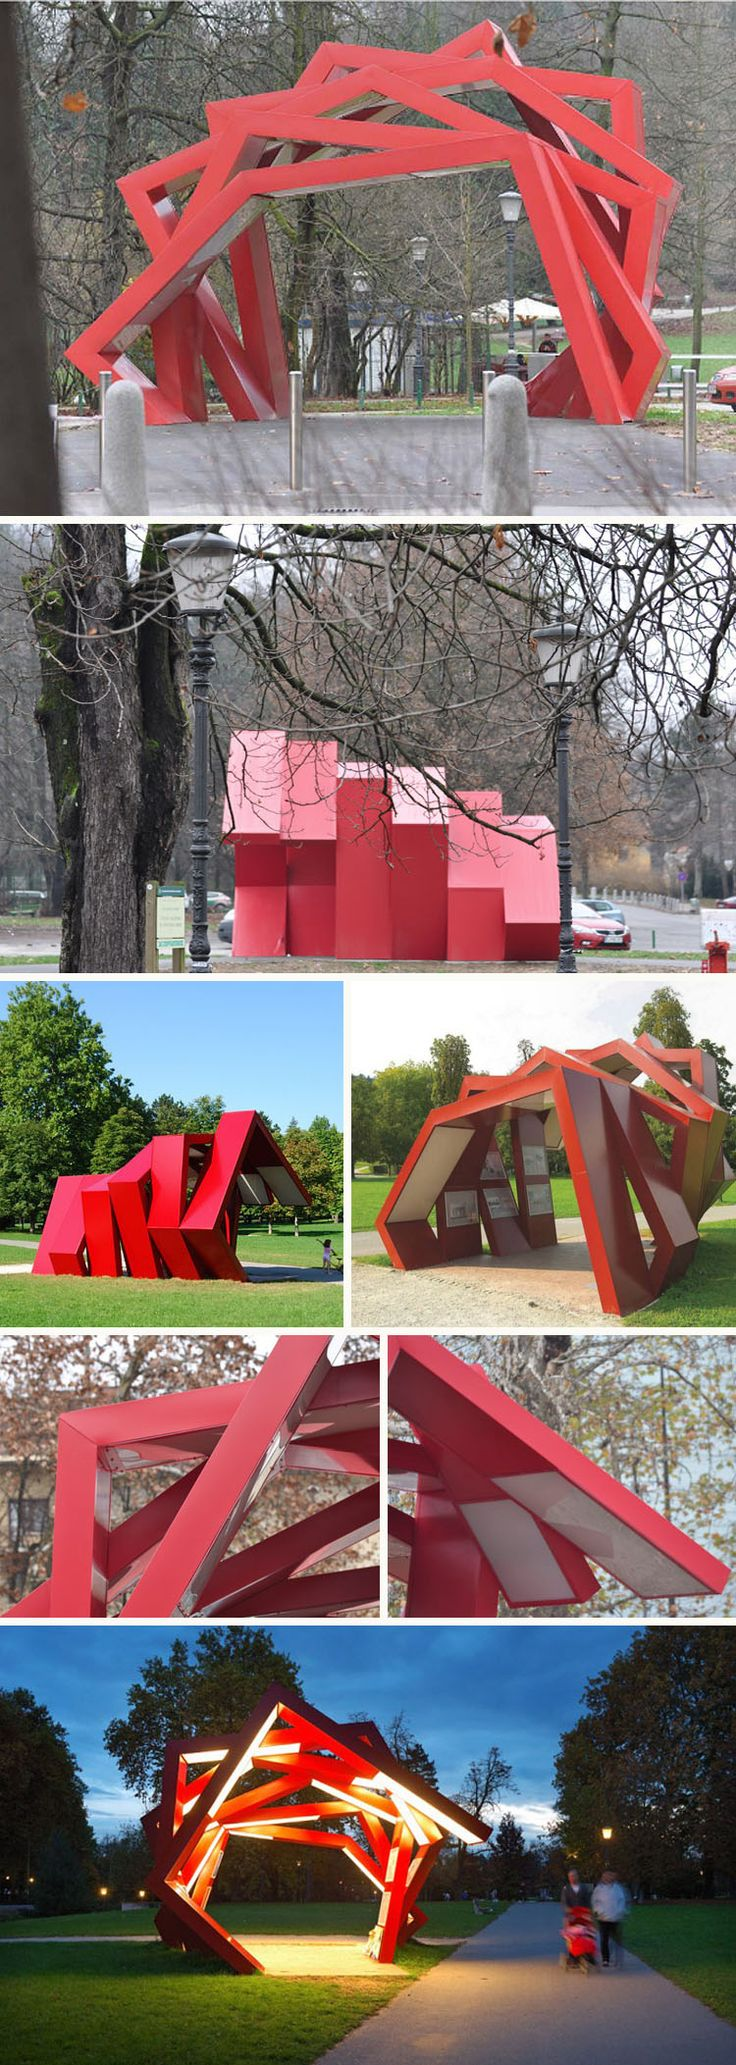 Rok-Grdisa_Trimo-Urban-Crash_Tivoli-Park_Ljubljana_Slovenia_Sculpture_collabcubed